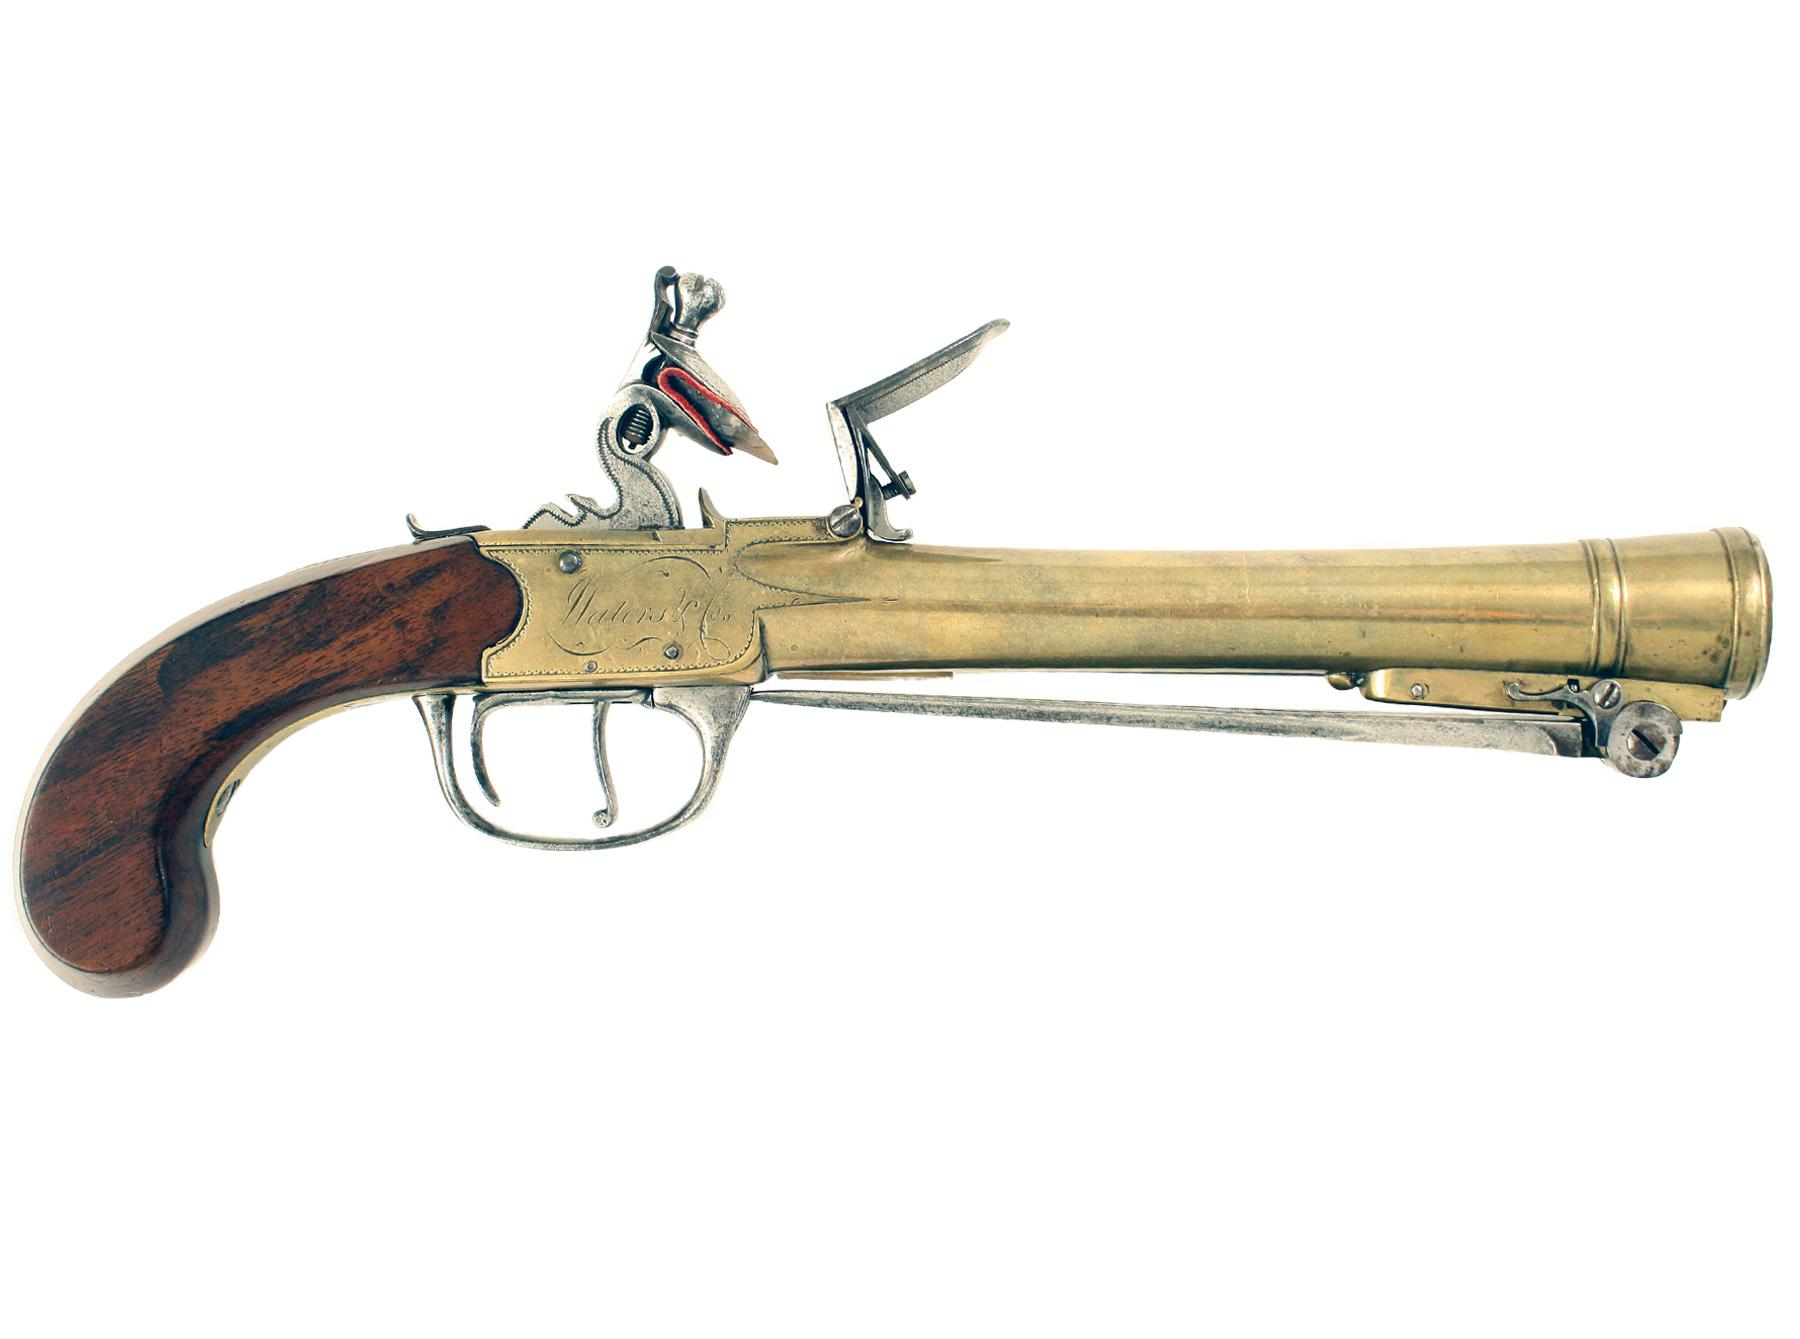 A Waters Patent Blunderbuss Pistol